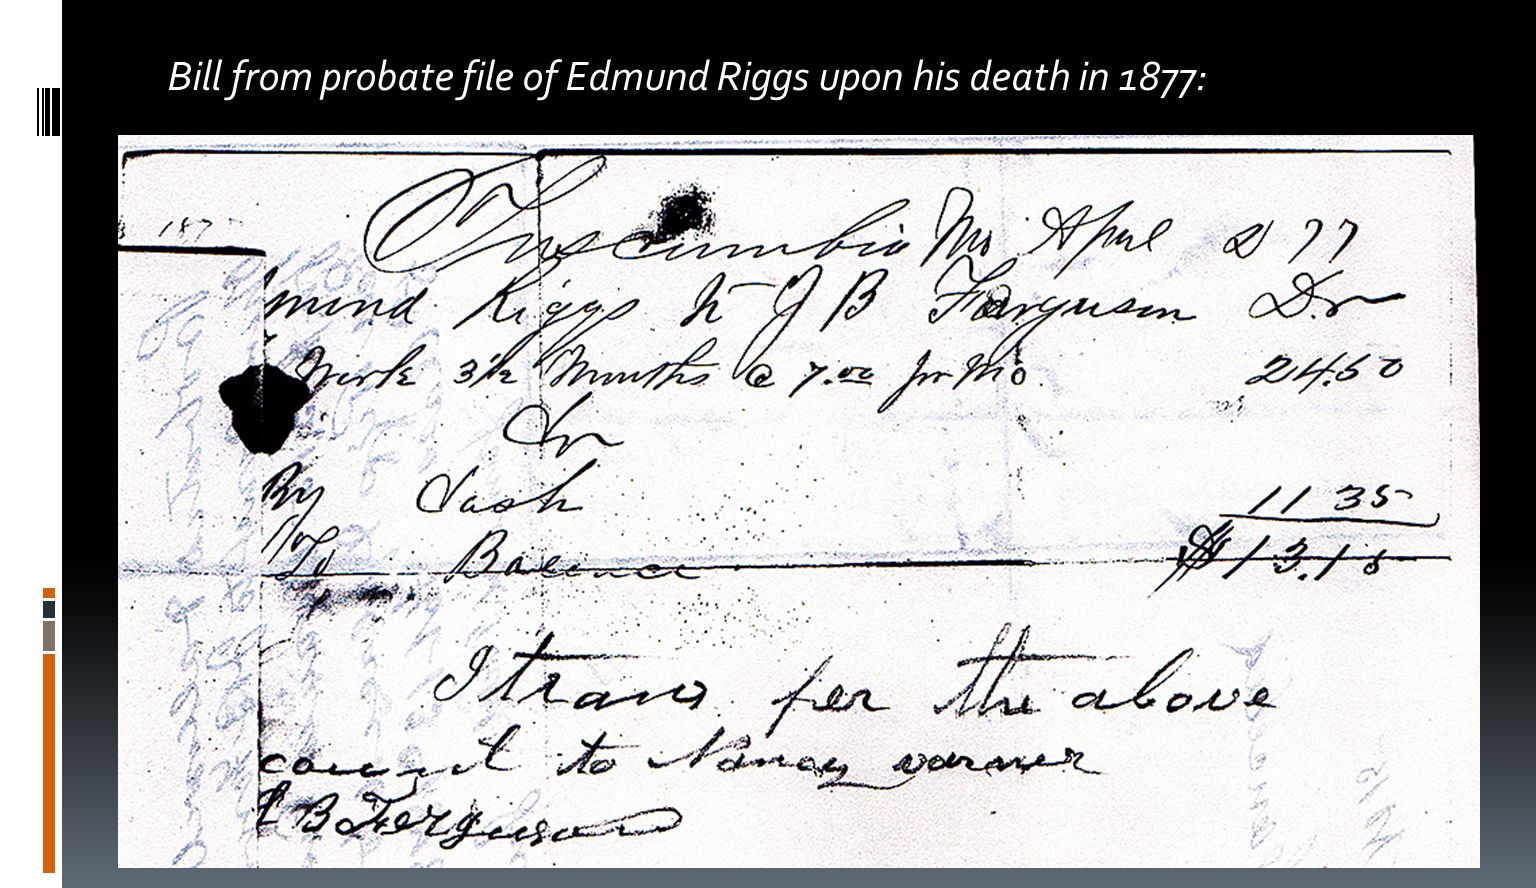 Bill from probate file of Edmund Riggs upon his death in 1877: